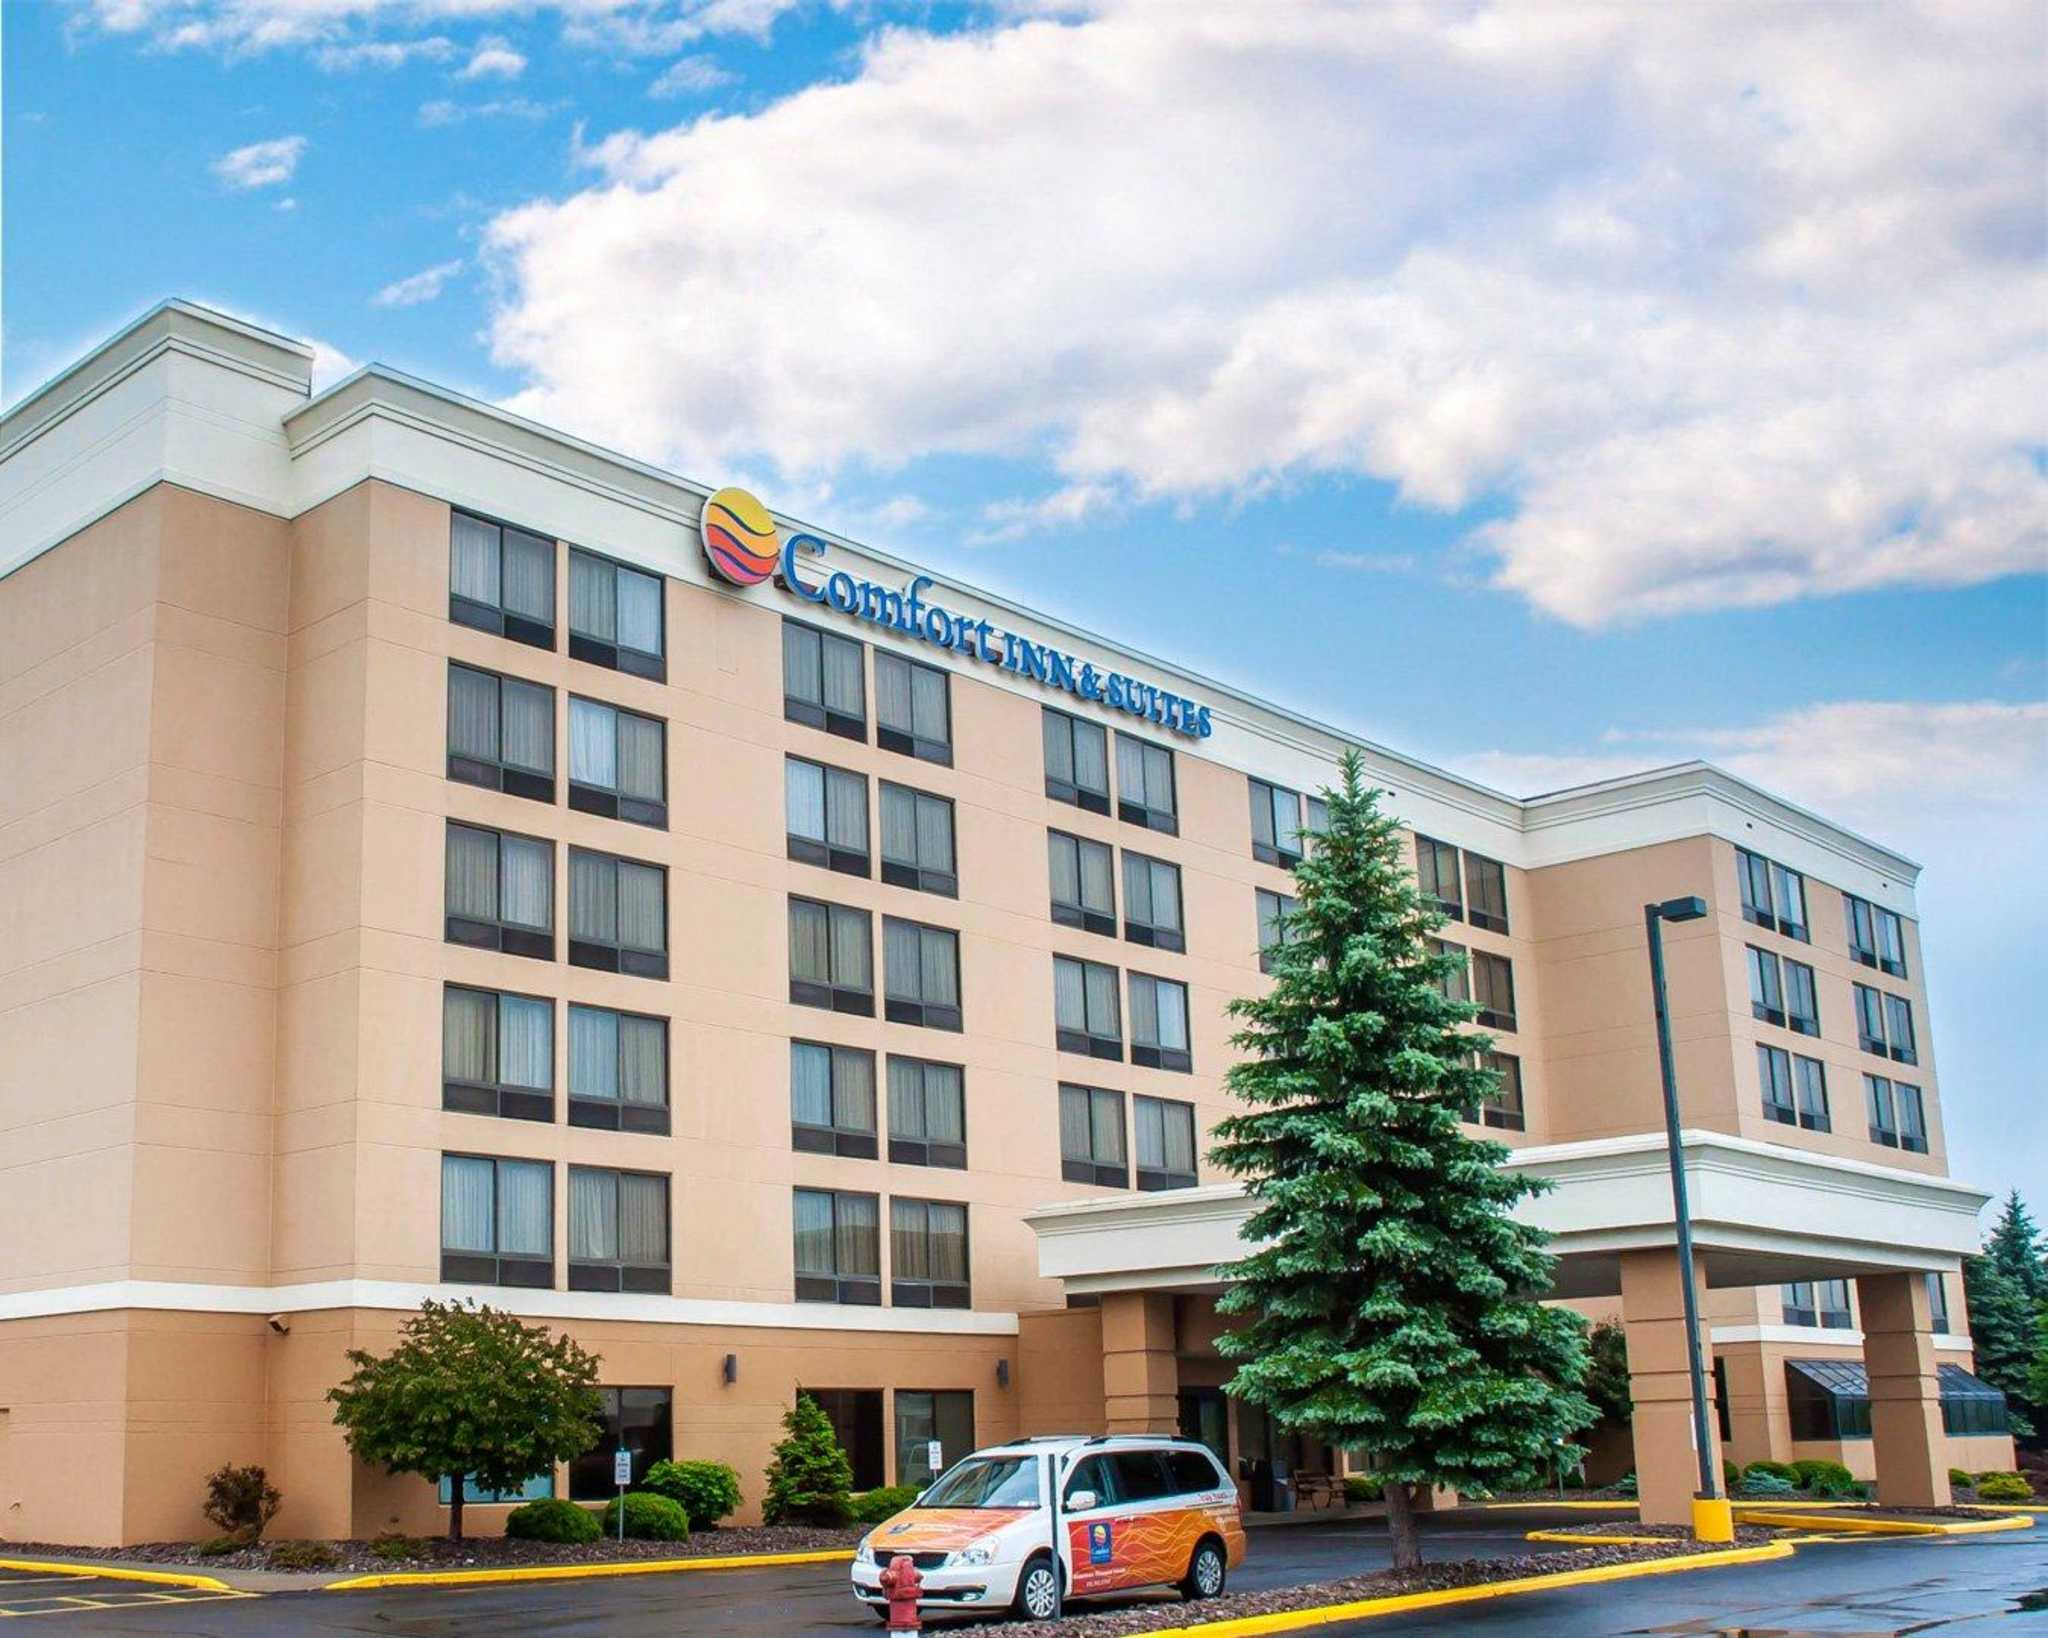 The Residence Inn is Watertown's first all-suite hotel, across from Arsenal Yards and the Charles River where Boston meets Cambridge. Our hotel boasts spacious studio, one- and two-bedroom suites with separate living and sleeping areas.